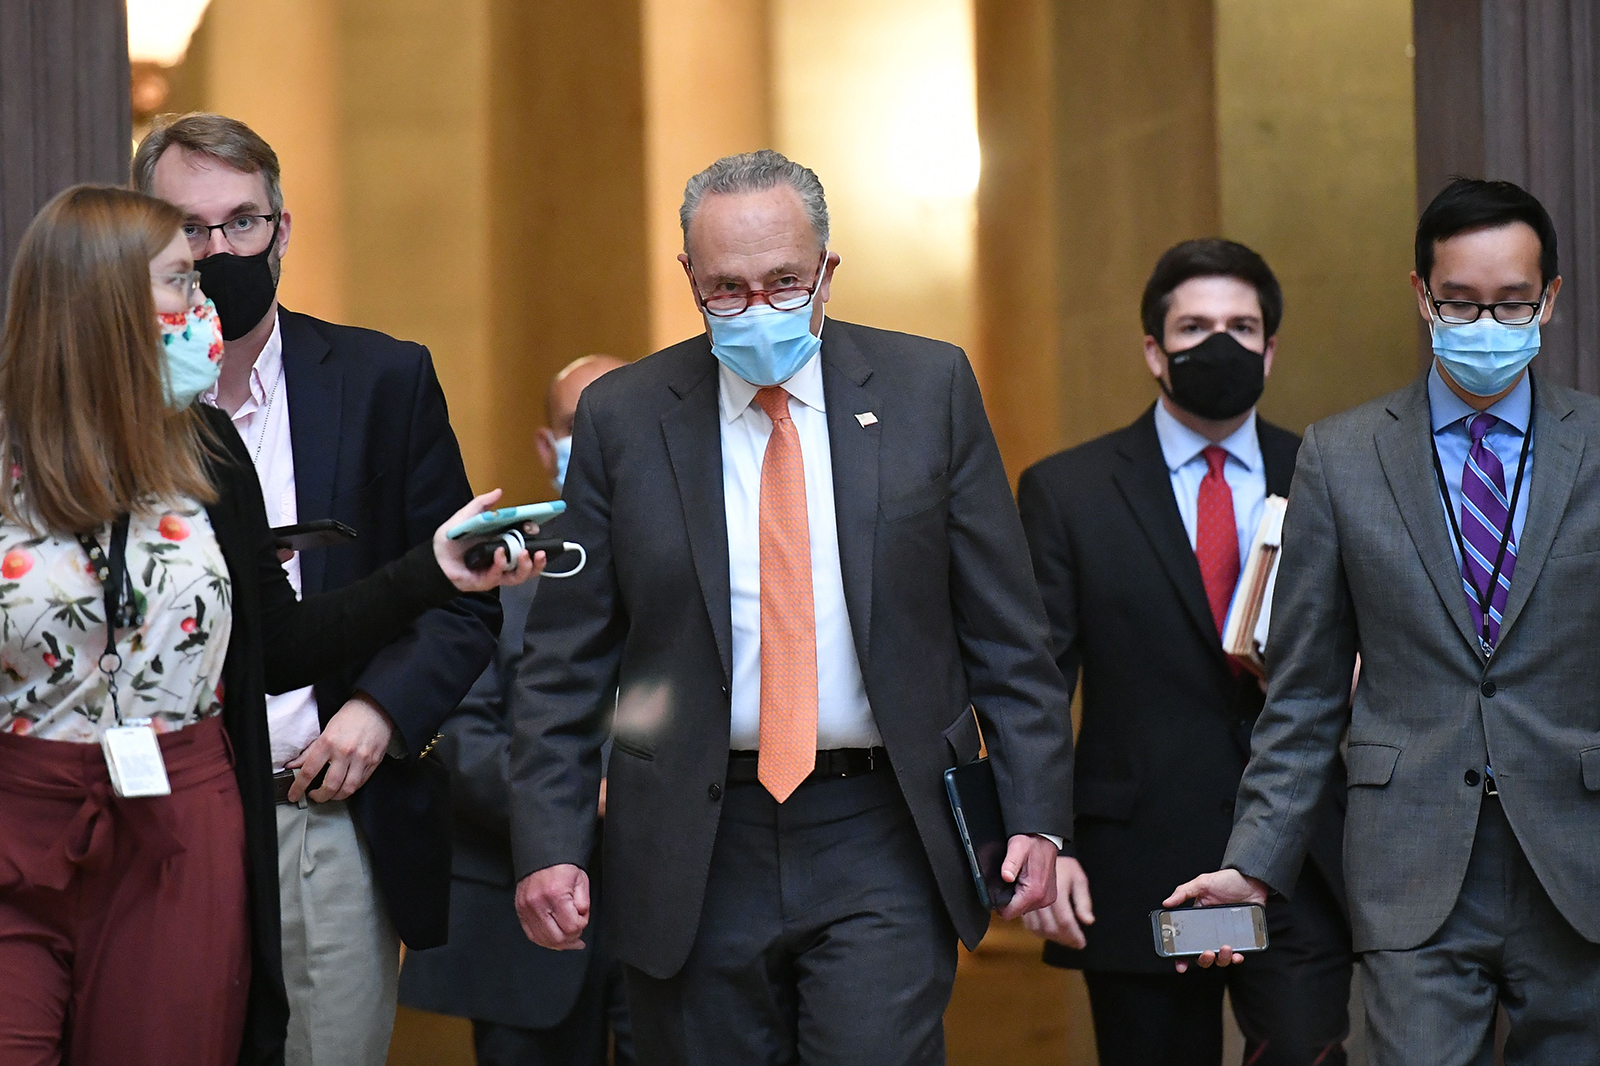 US Senate Minority Leader Chuck Schumer, D-NY, makes his way to the office of House Speaker Nancy Pelosi, D-CA, for coronavirus relief talks at the US Capitol in Washington, DC on August 6